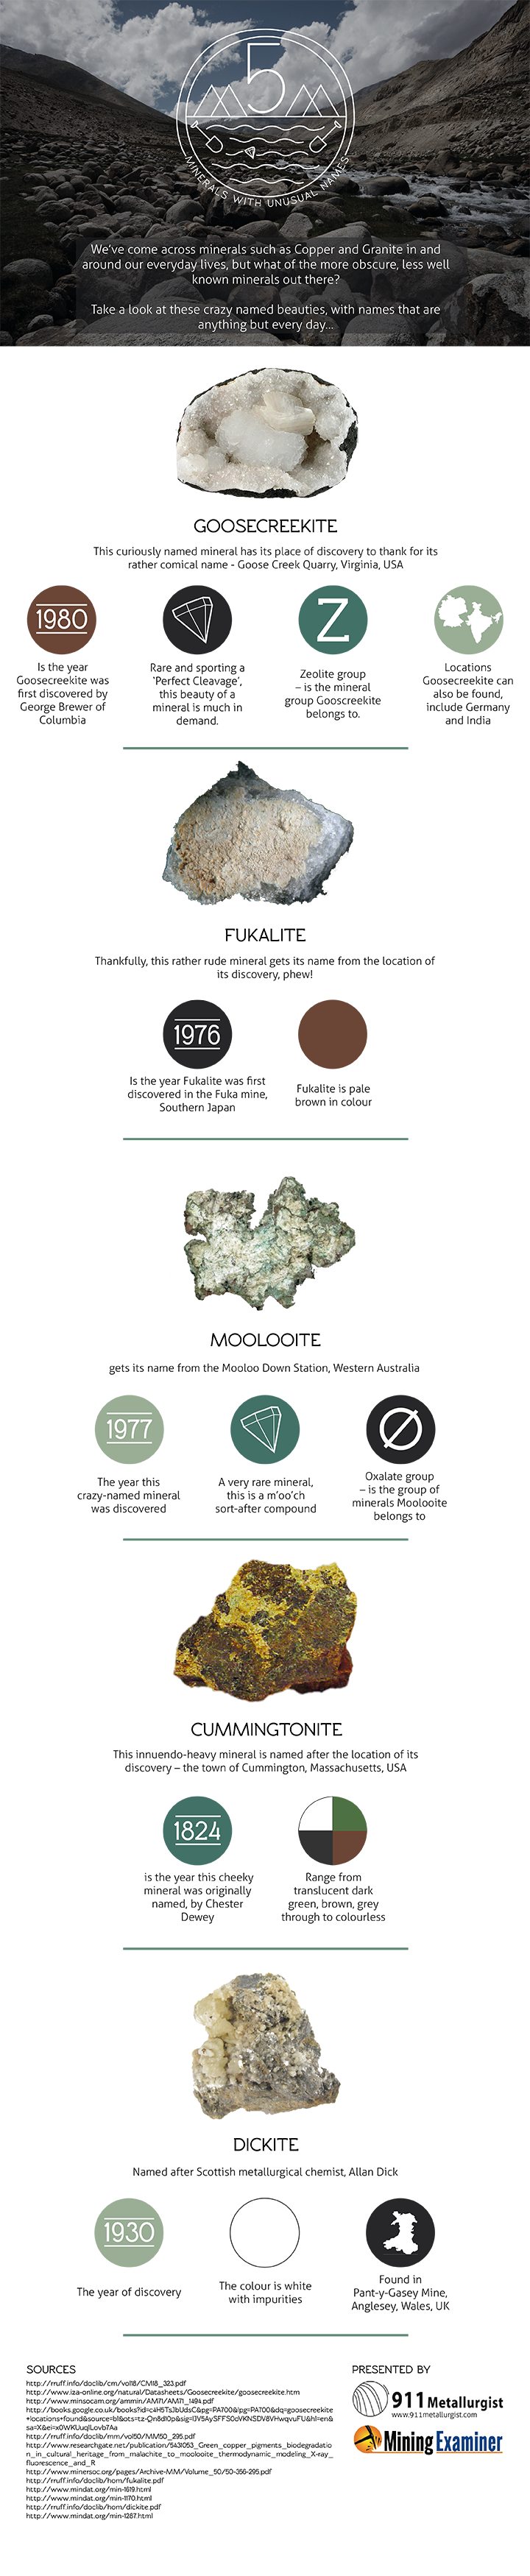 Five Minerals With Unusual Names [Infographic] image 5Minerals 01